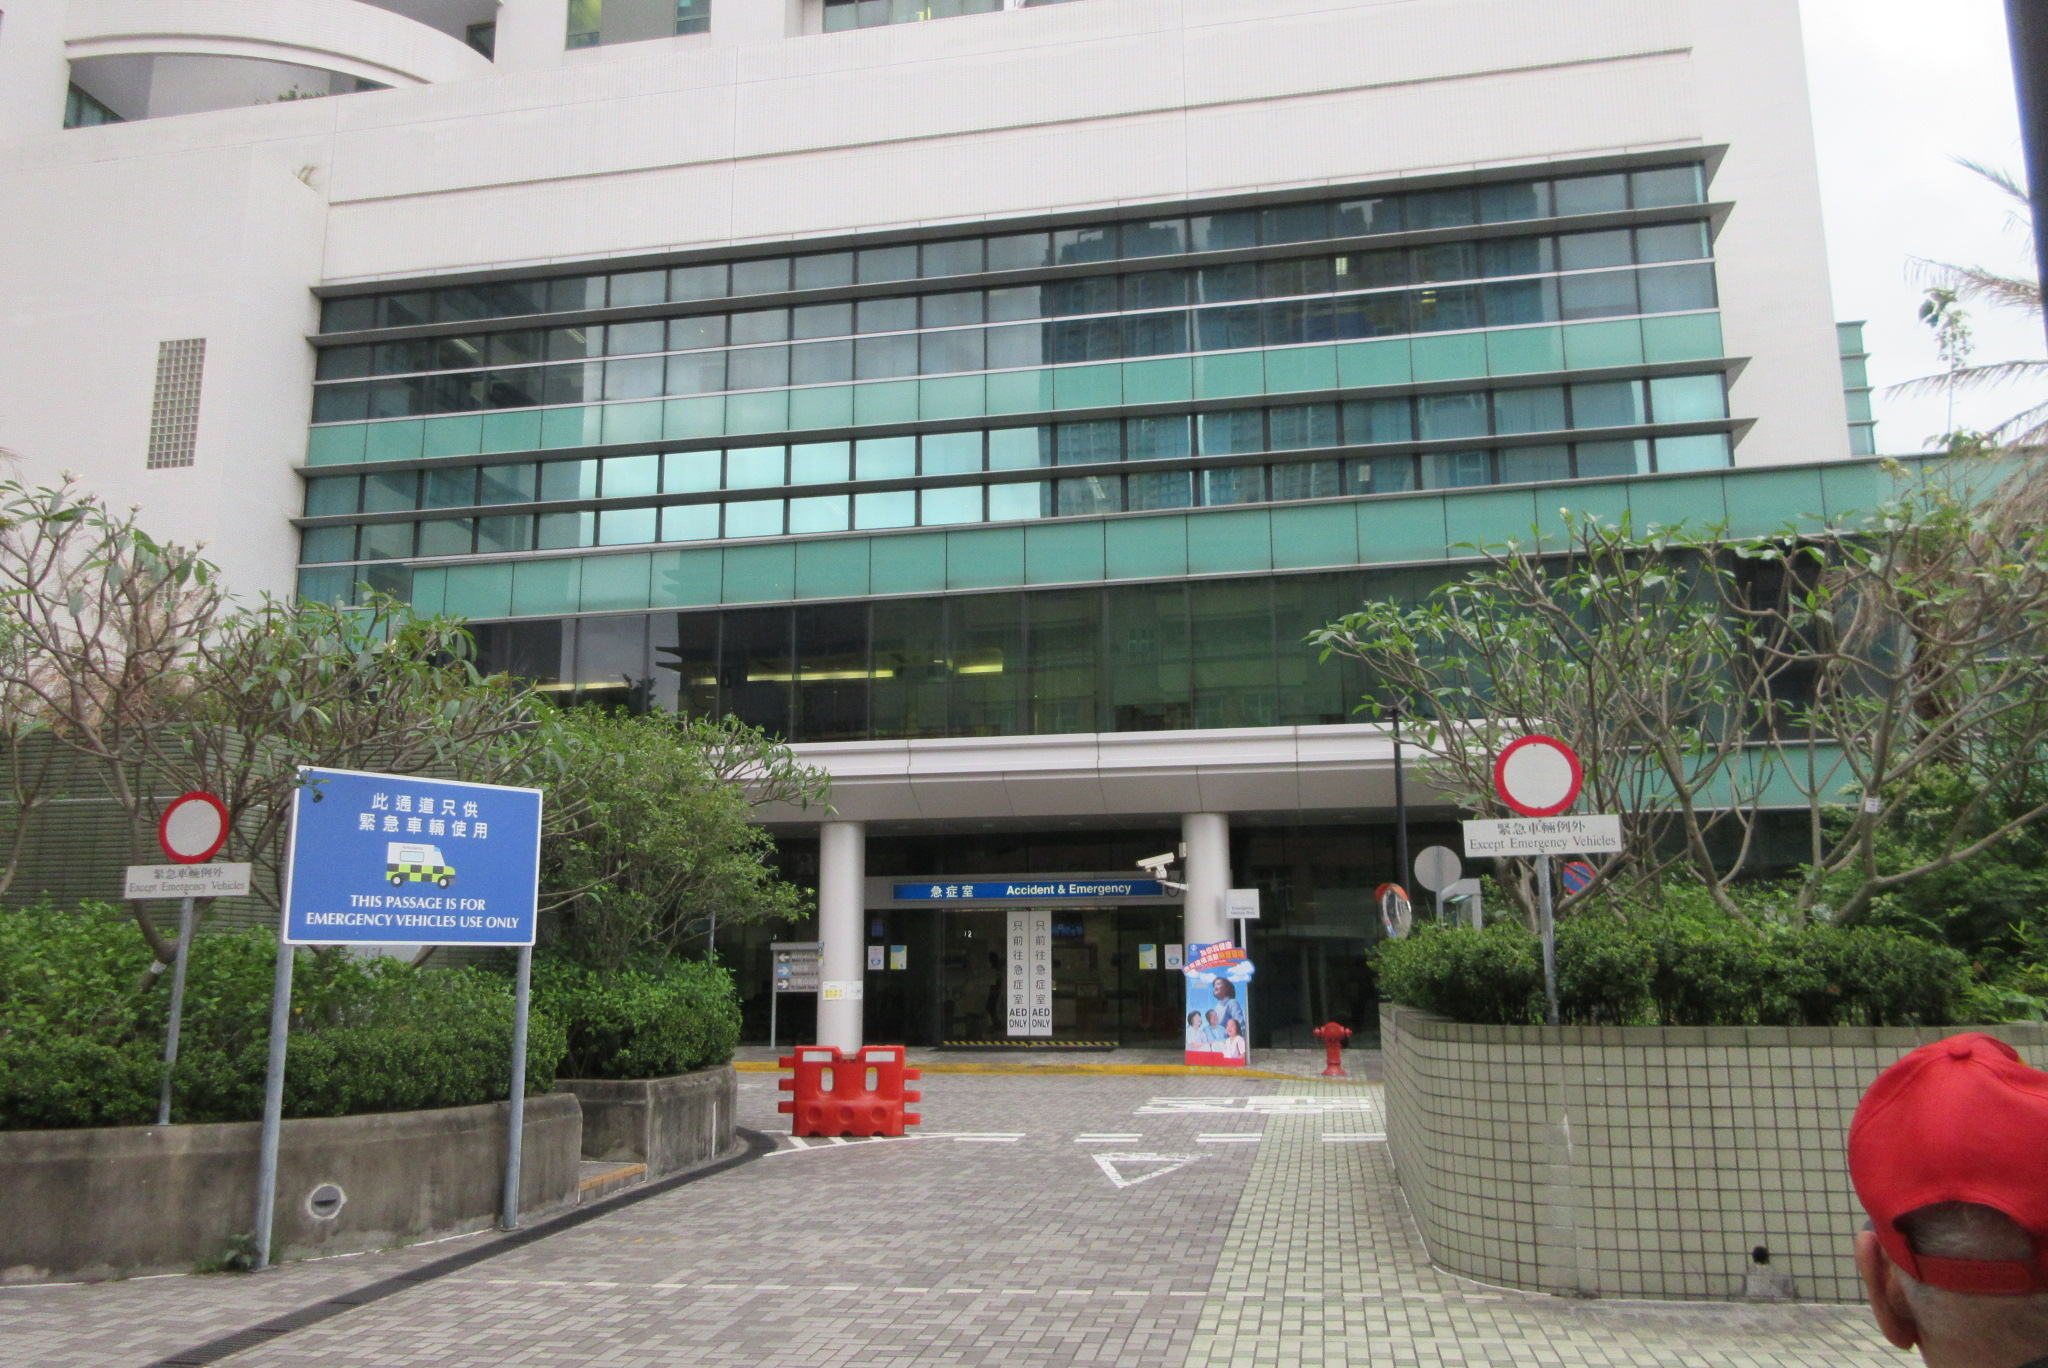 Filehk yuen long pok oi hospital emergency entrance filehk yuen long pok oi hospital emergency entrance april 2017 altavistaventures